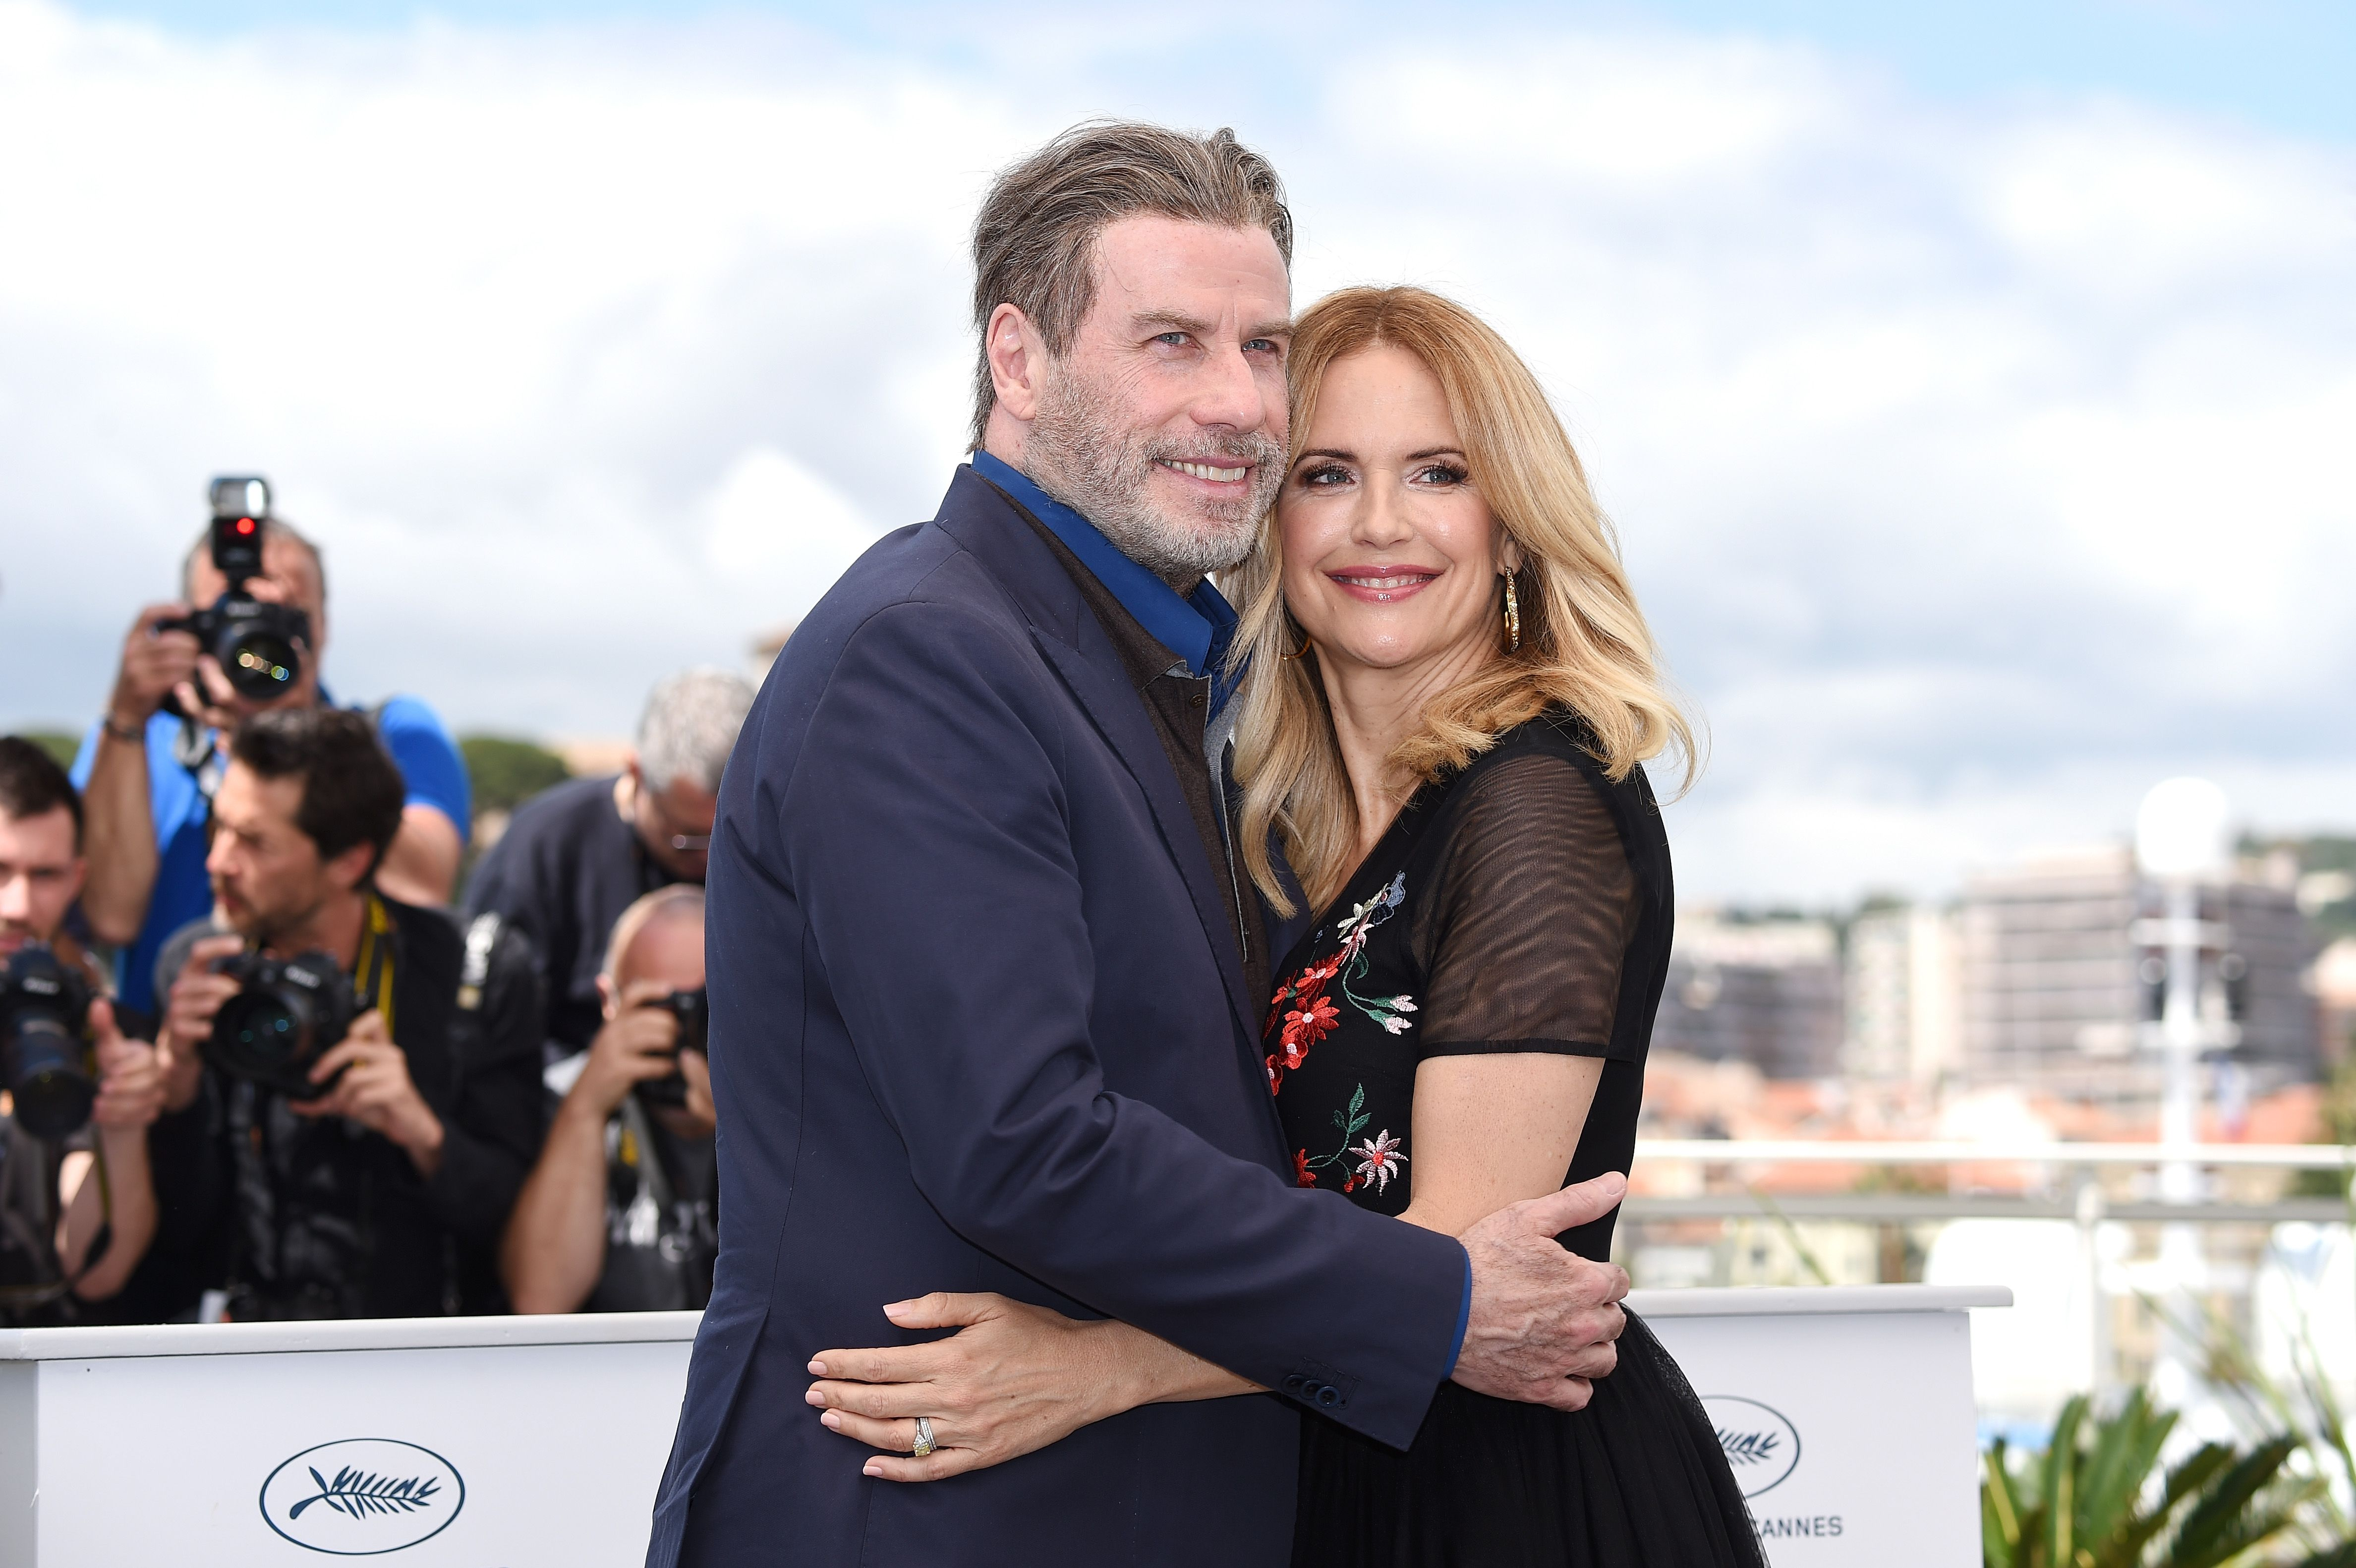 """Kelly Preston and John Travolta at """"Rendezvous With John Travolta - Gotti"""" Photocall during the 71st annual Cannes Film Festival at Palais des Festivals on May 15, 2018   Photo: Getty Image"""